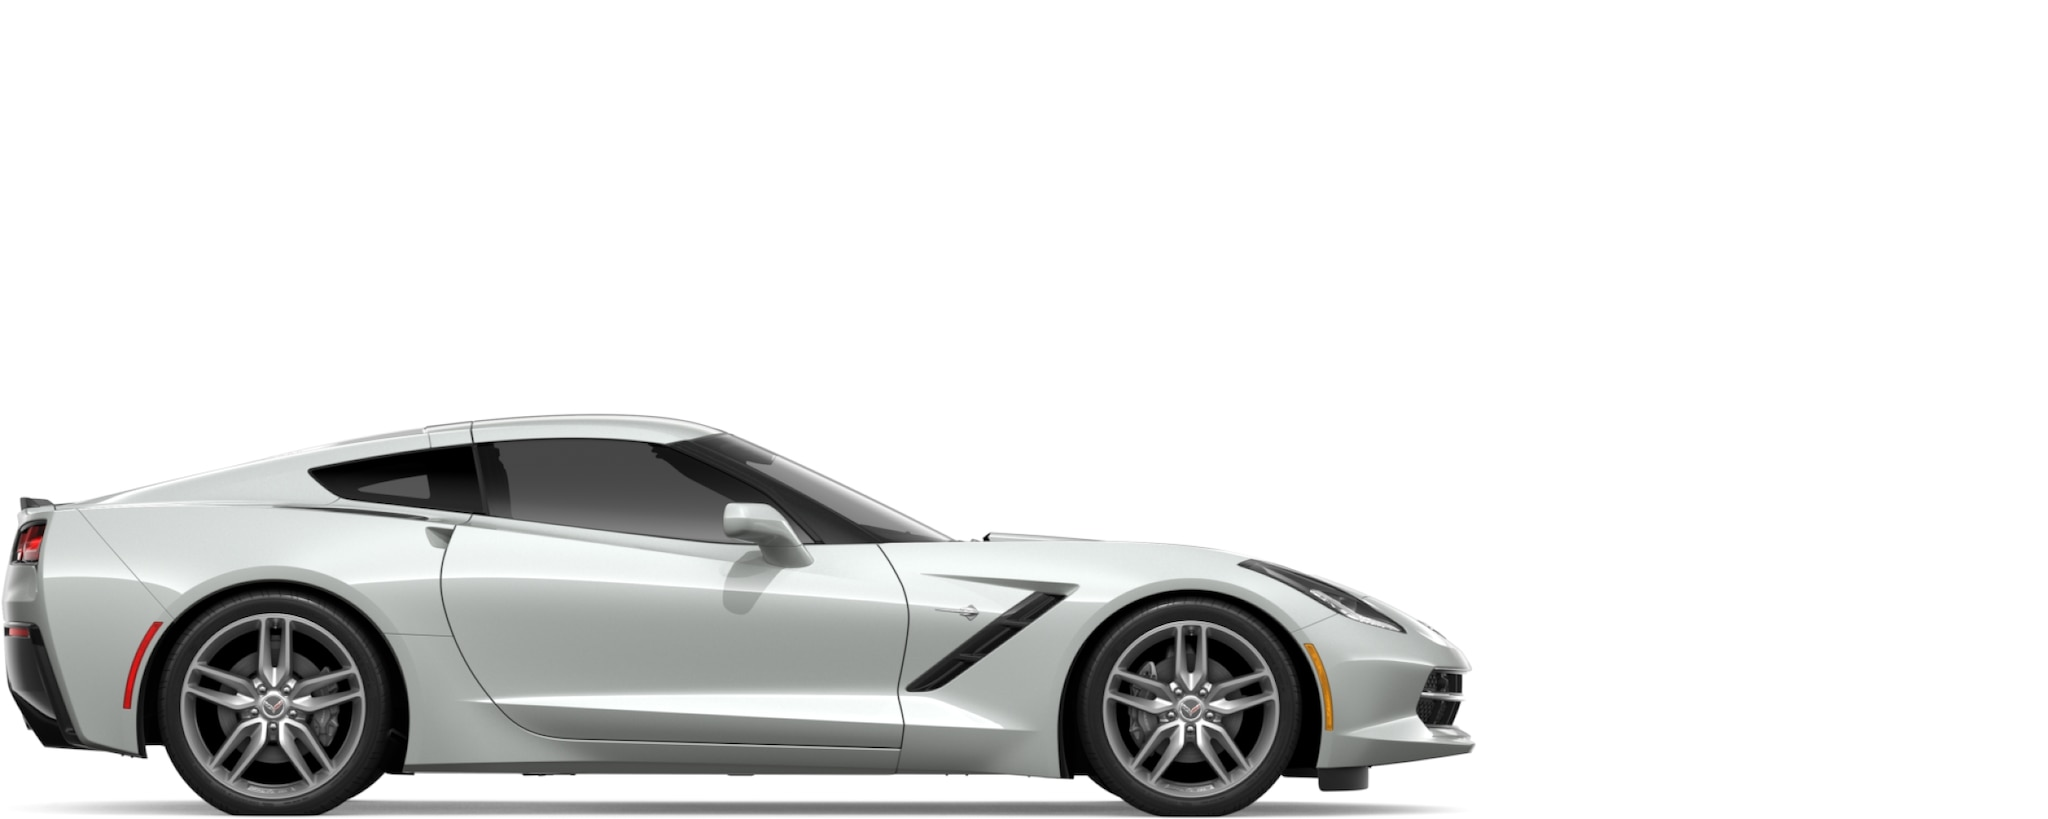 Corvette Stingray 2019